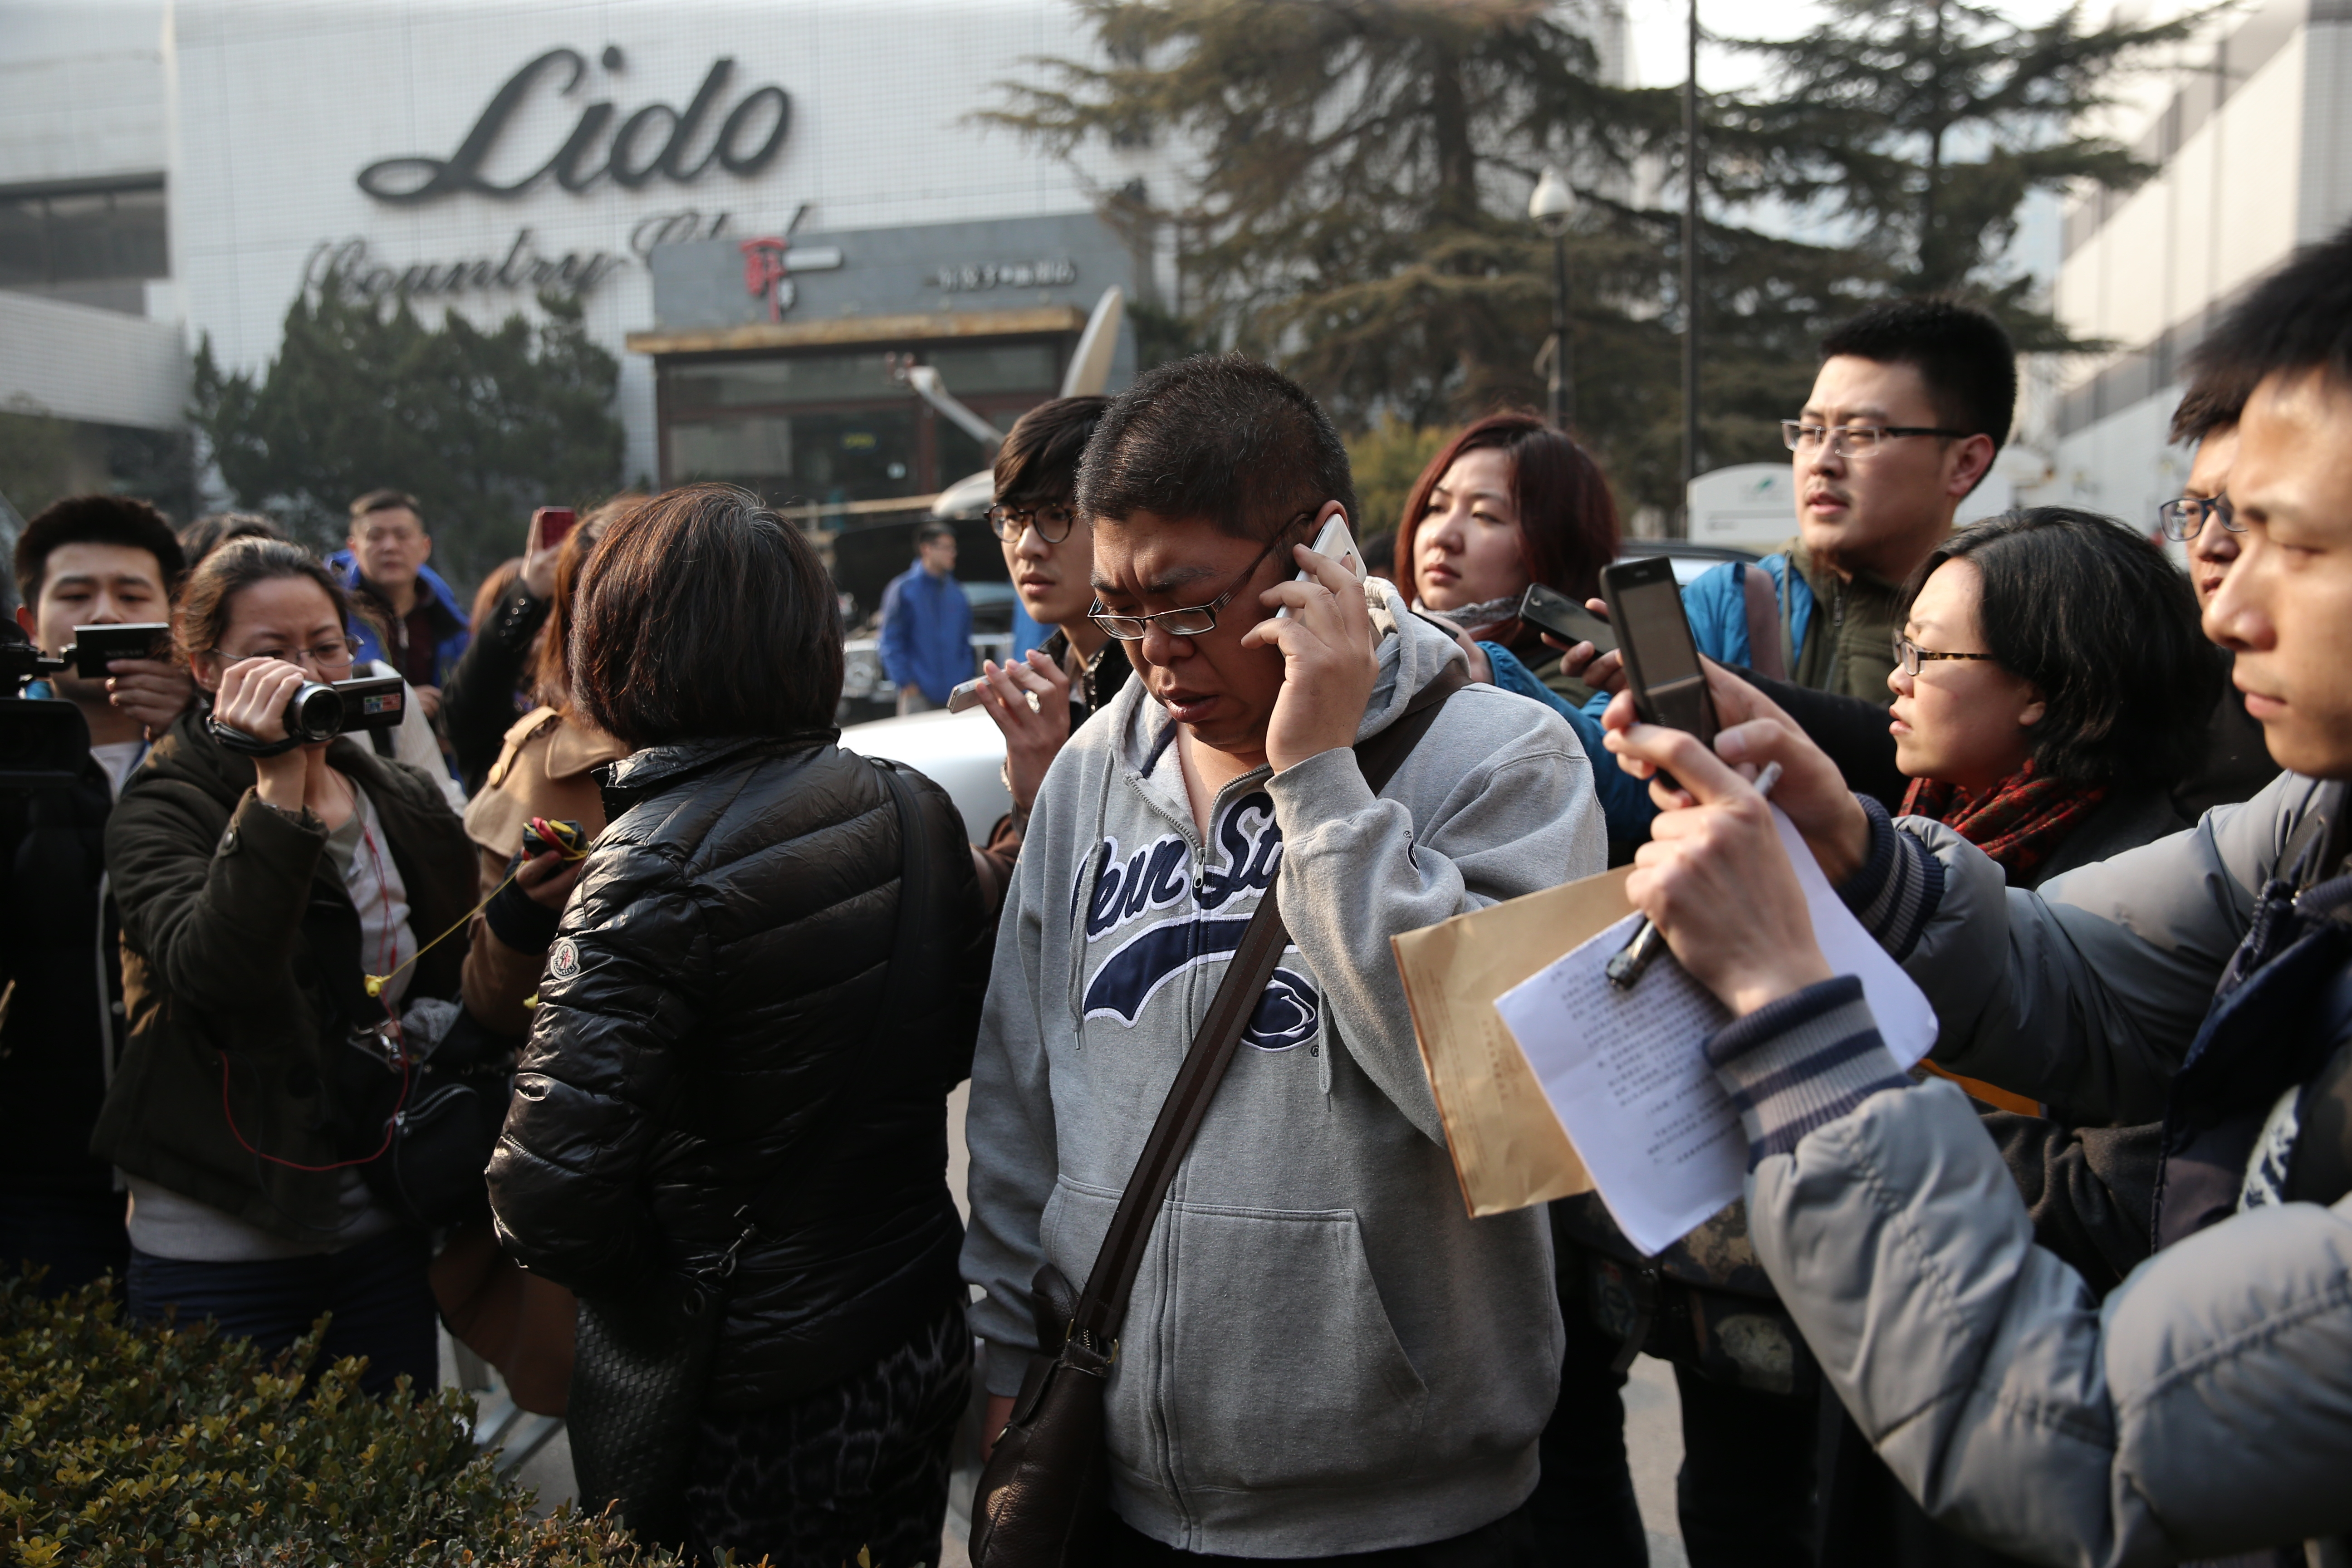 A relative of a passenger onboard Malaysia Airlines flight MH370 makes a call at Lidu Hotel on Saturday in Beijing, China. The flight from Kuala Lumpur to Beijing was reported missing after the crew failed to check in as scheduled while flying over the sea between Malaysia and Ho Chi Minh City in Vietnam, according to published reports.